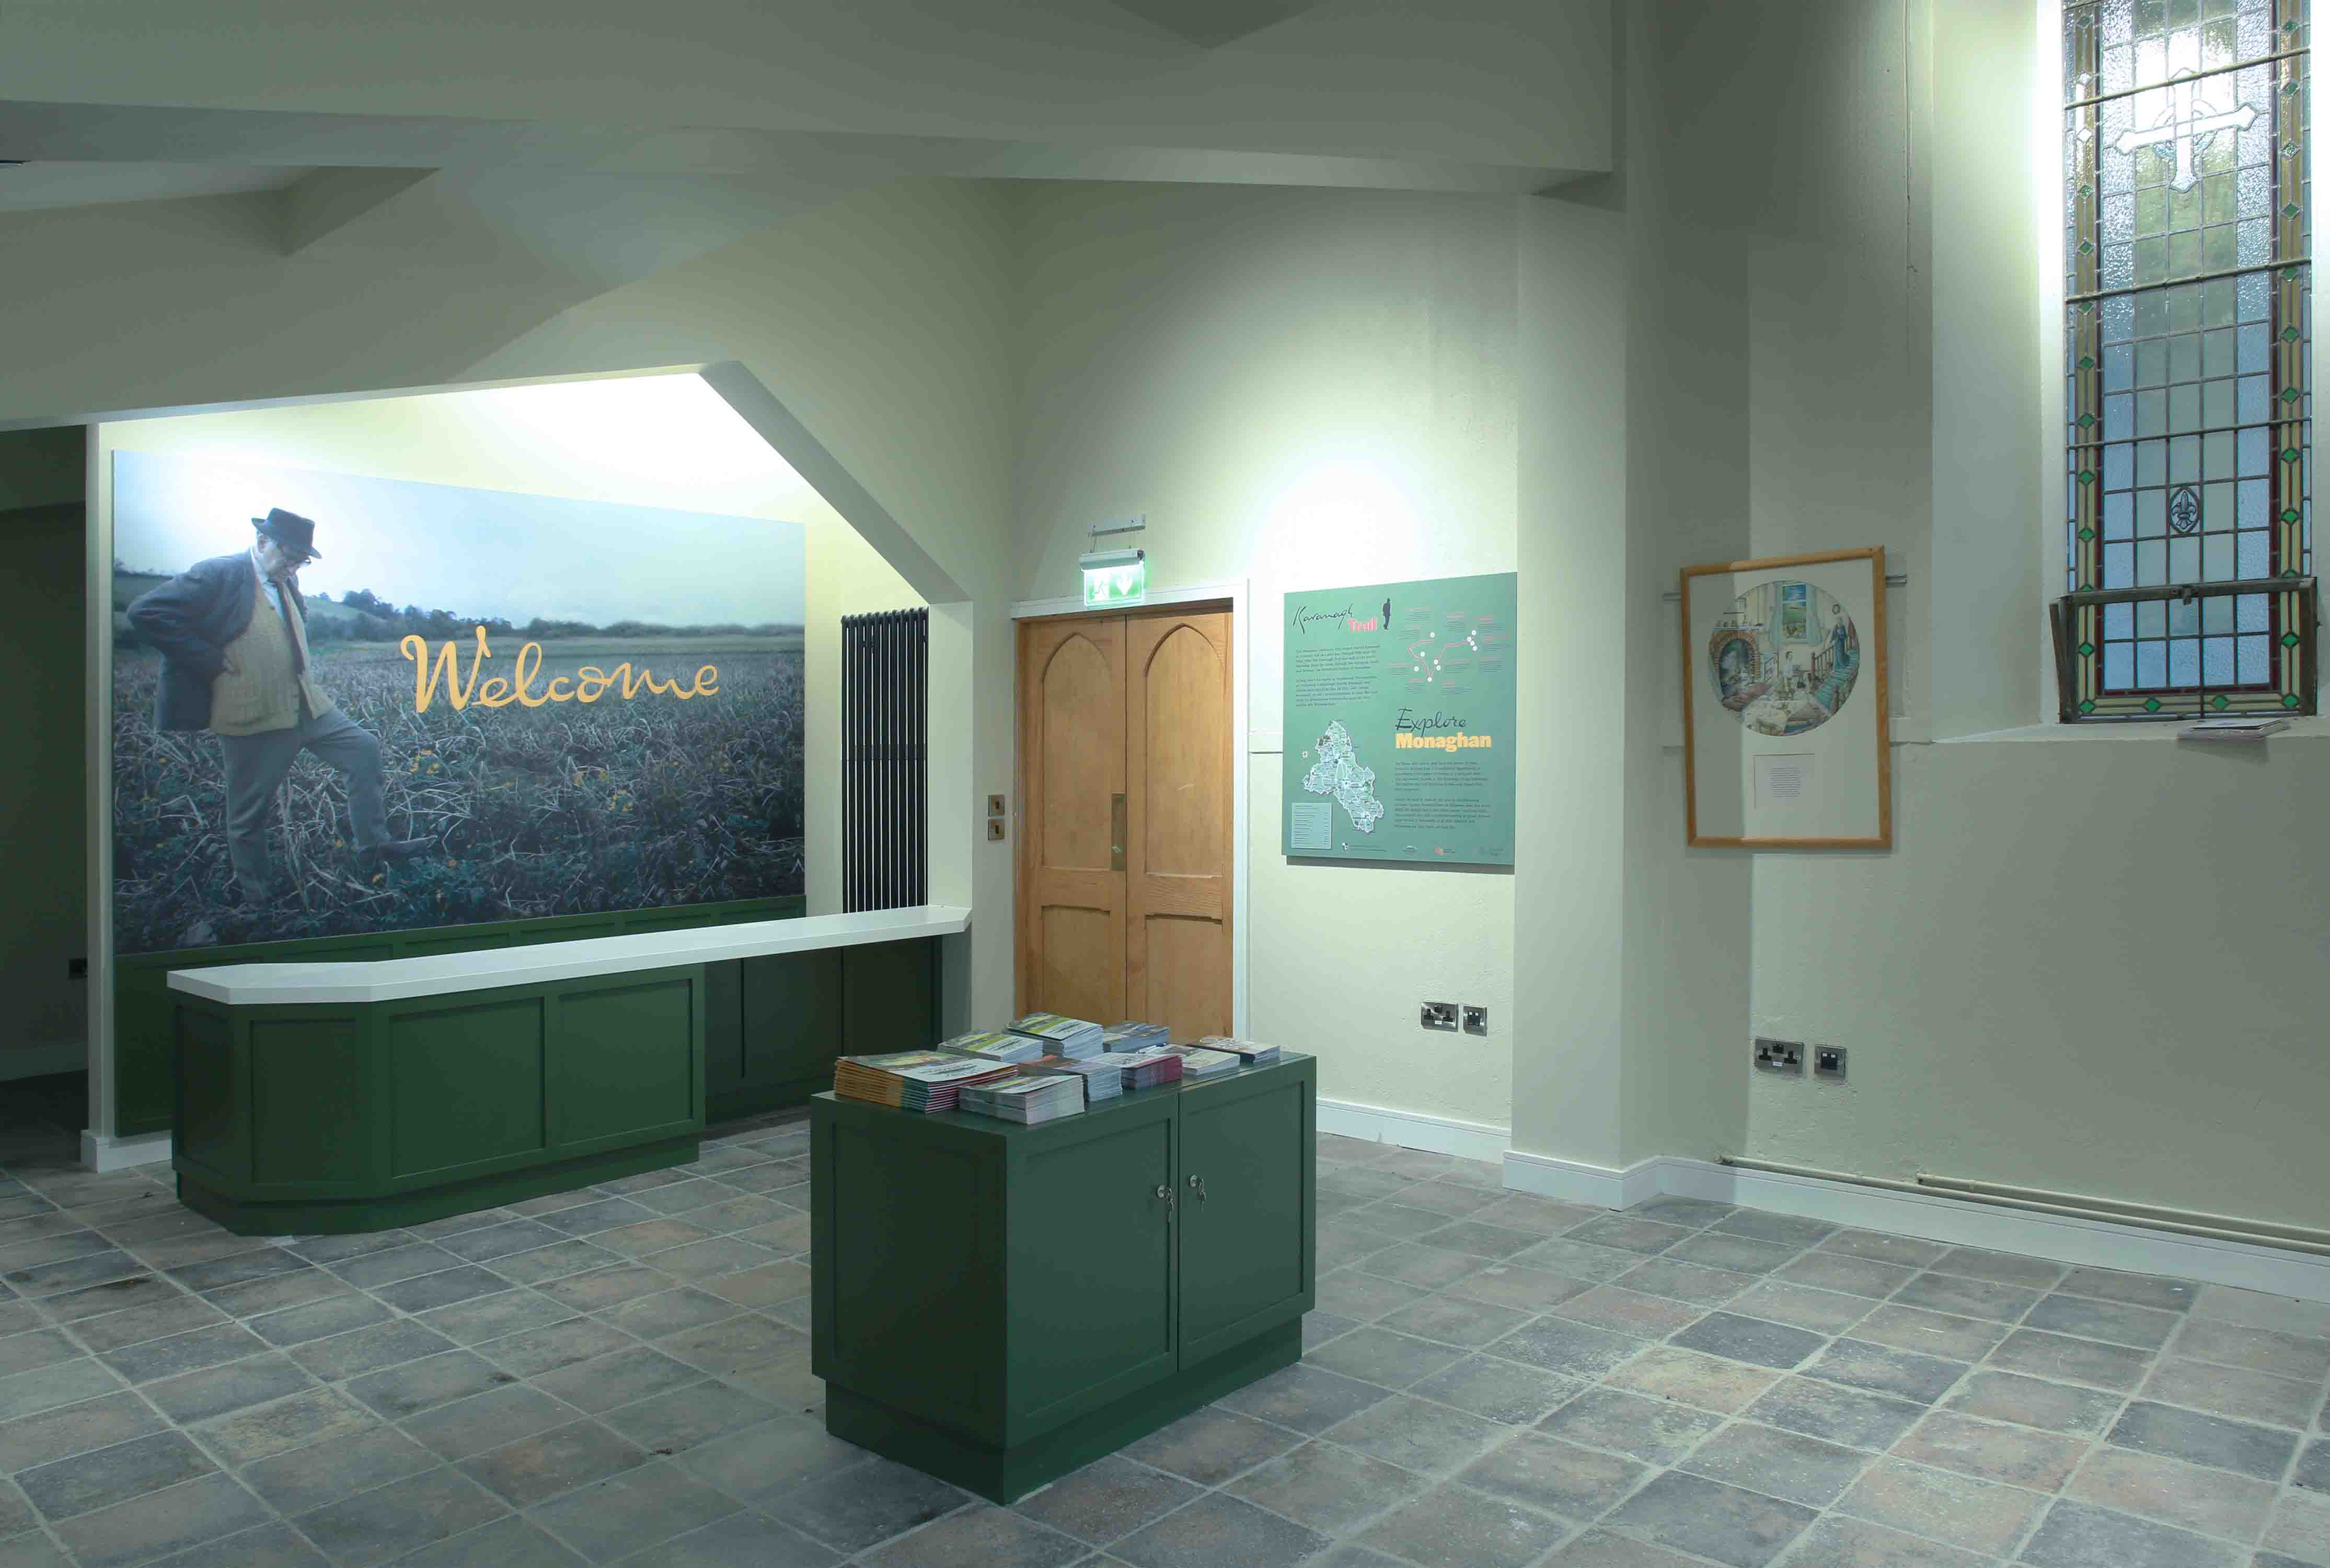 Patrick Kavanagh Exhibition Centre (2)